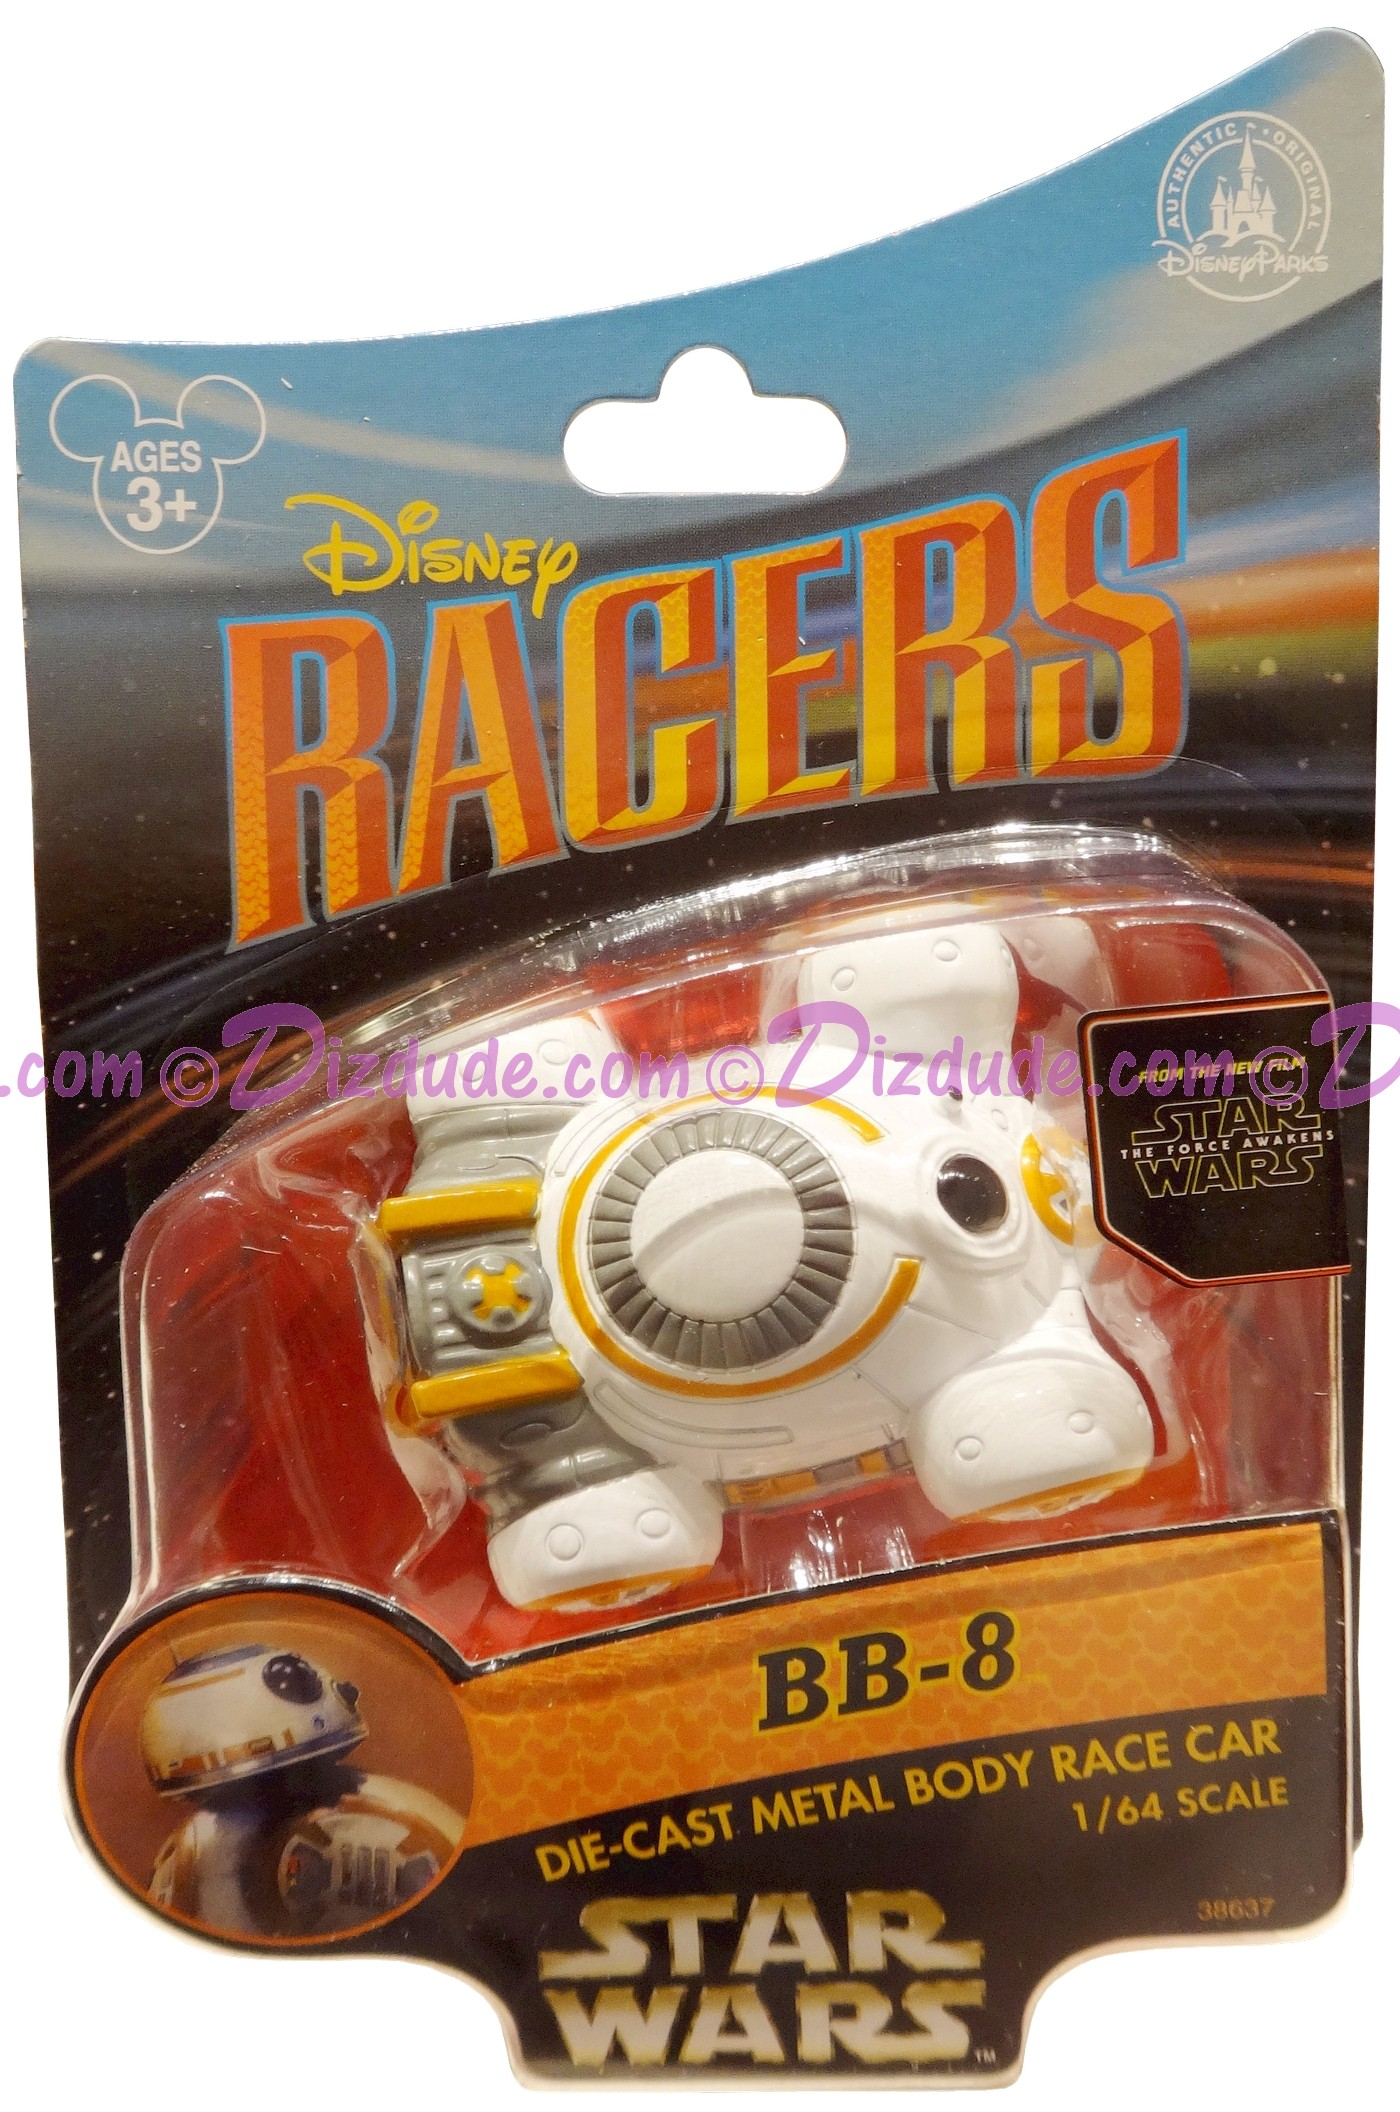 Star Wars The Force Awakens Disney Racer BB-8 die cast metal body race car 1/64 scale © Dizdude.com